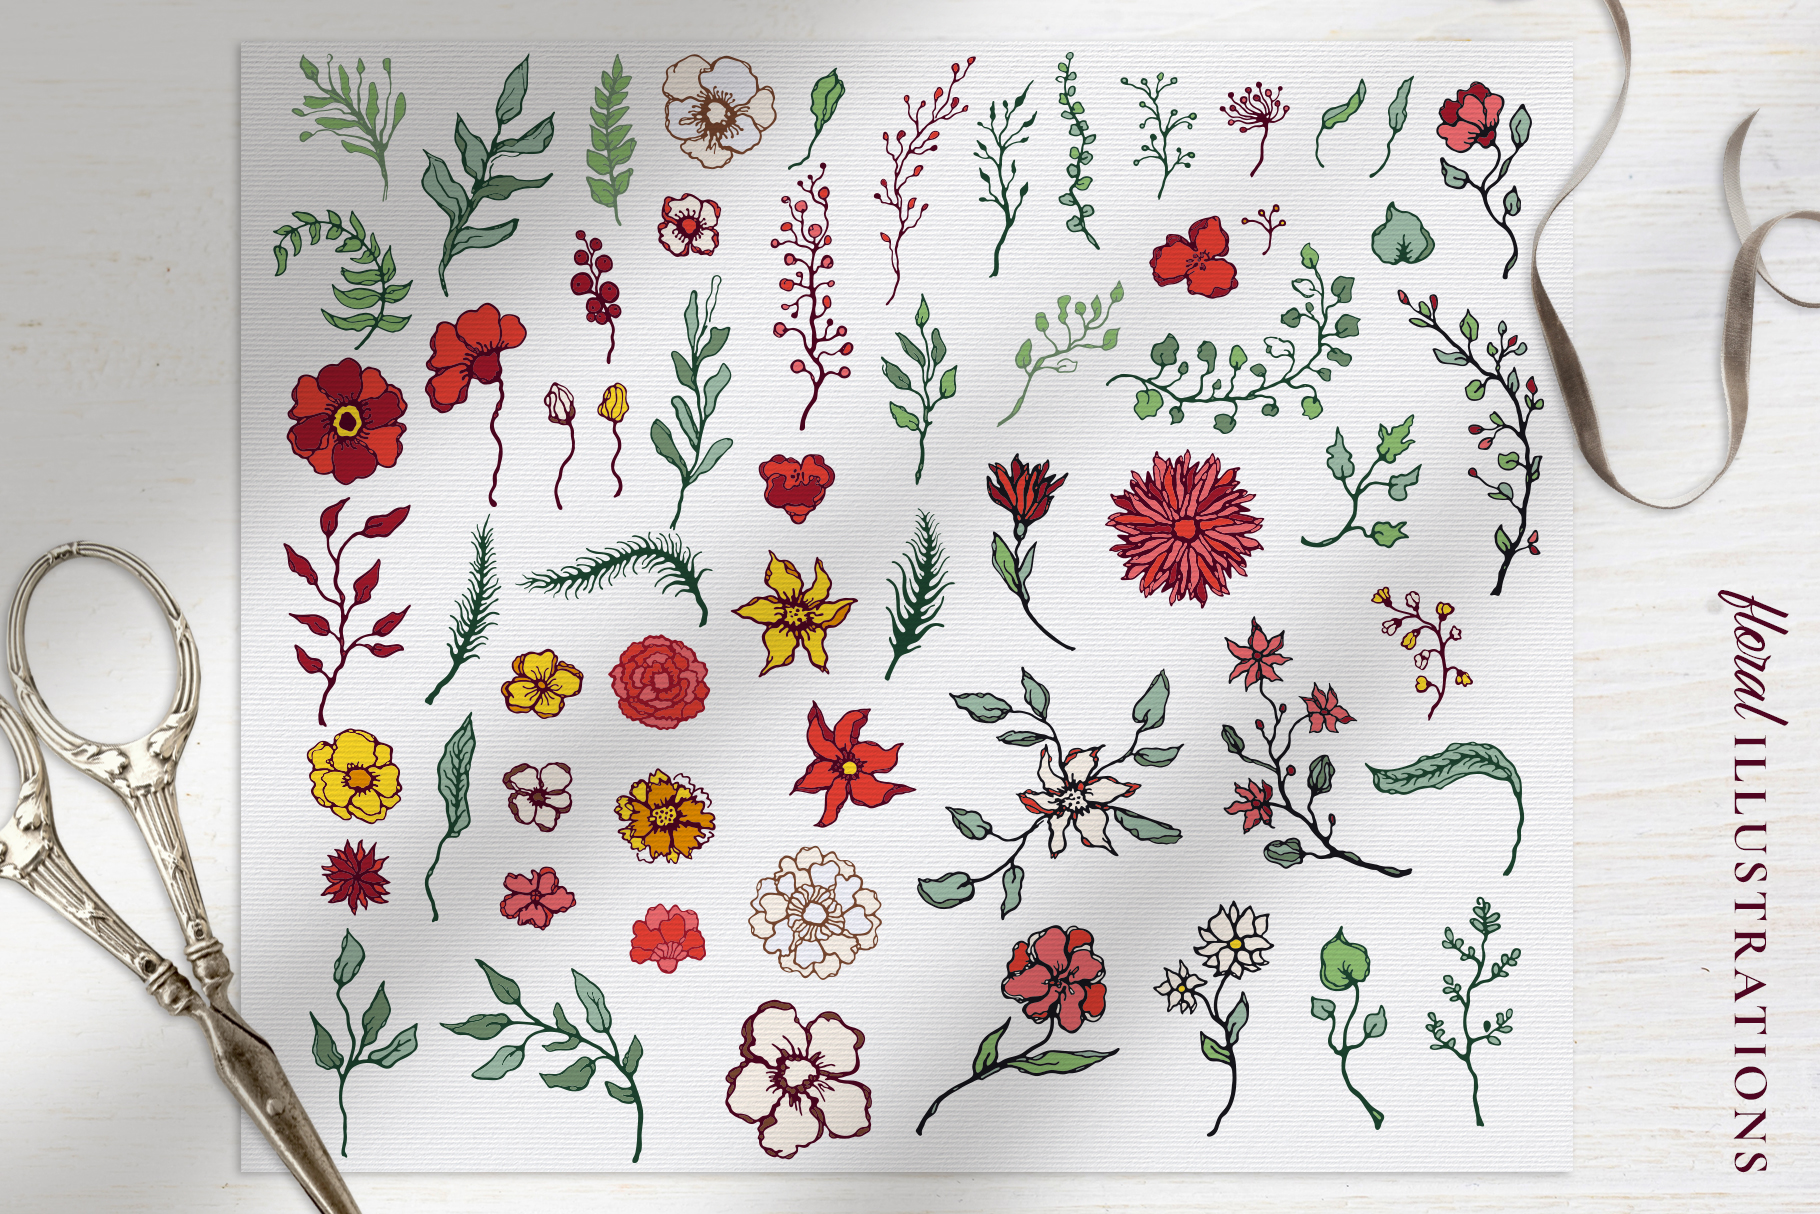 Winter Floral Patterns & Illustrations example image 4